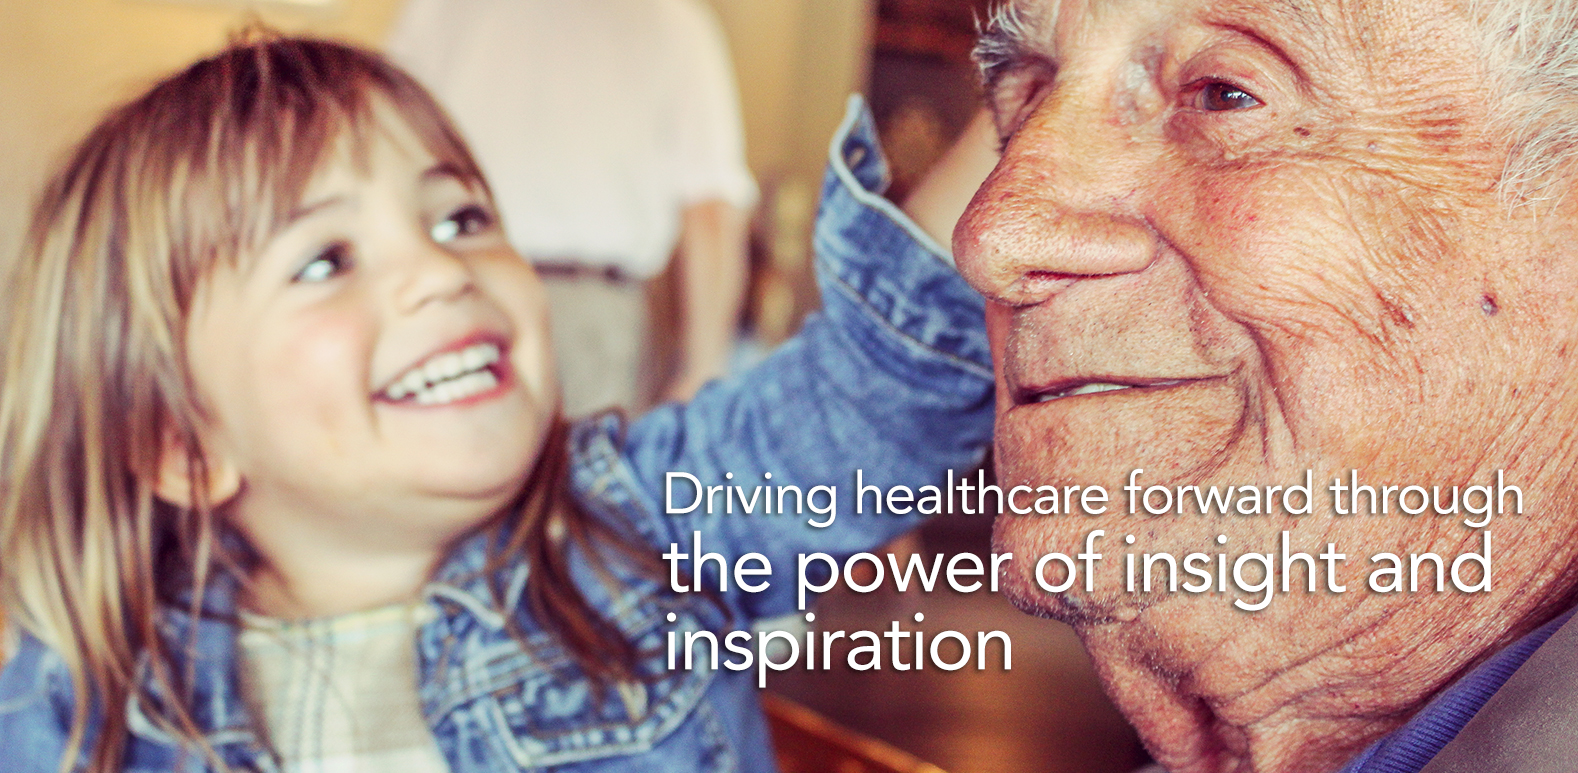 ampco home driving healthcare forward through the power of insight and inspiration